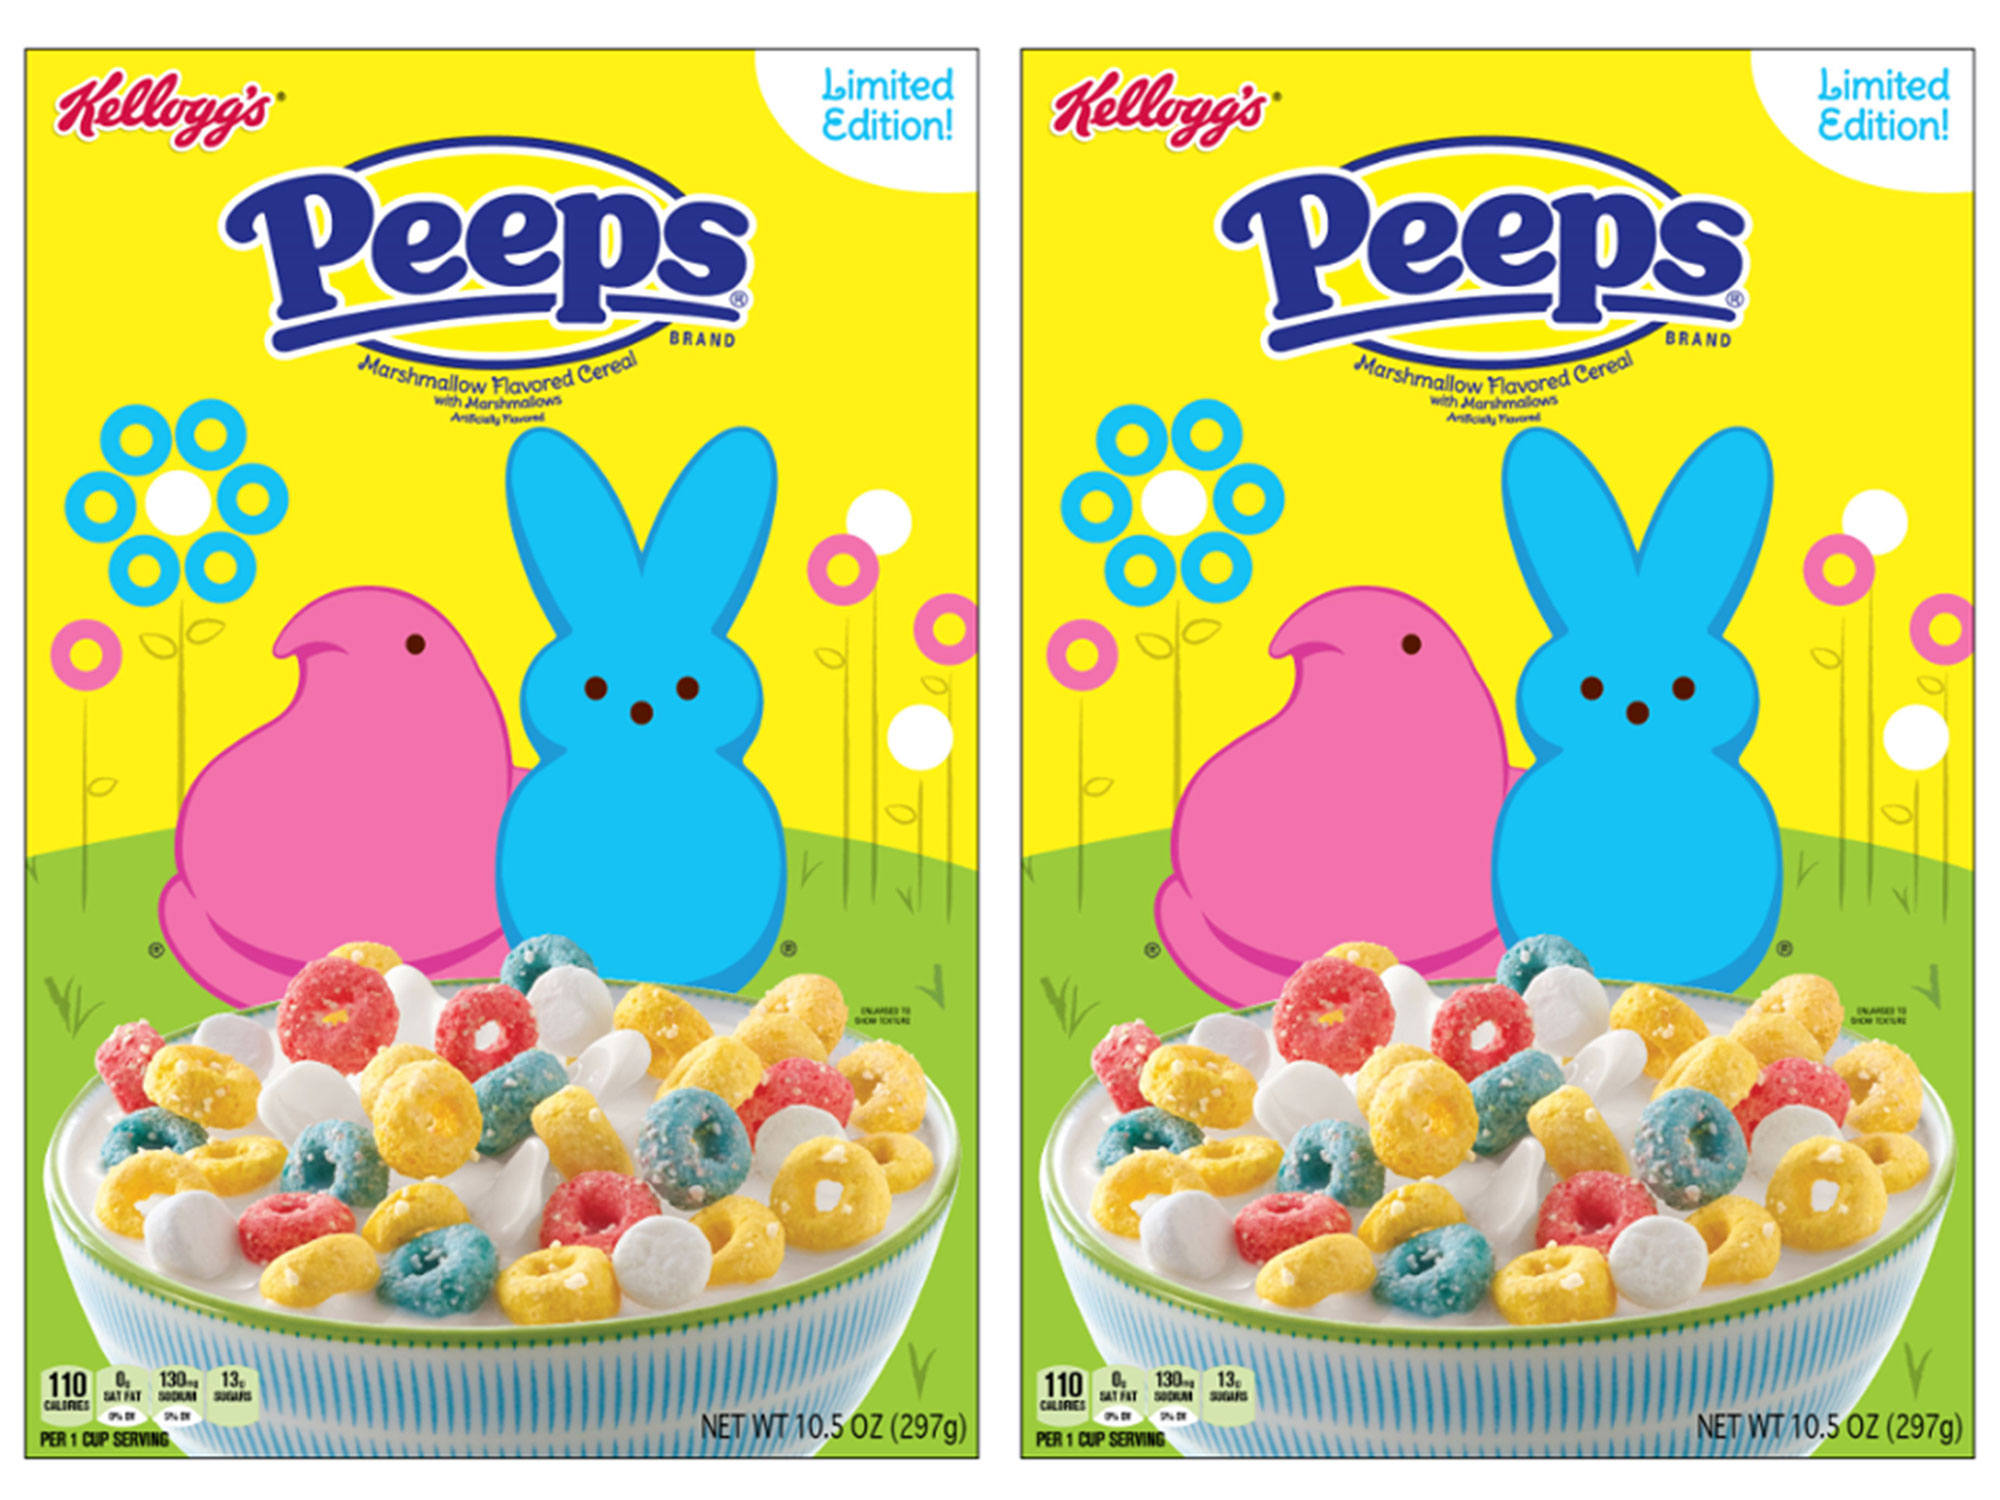 Peeps Cereal Is the Ultimate Love-It-Or-Hate-It Breakfast